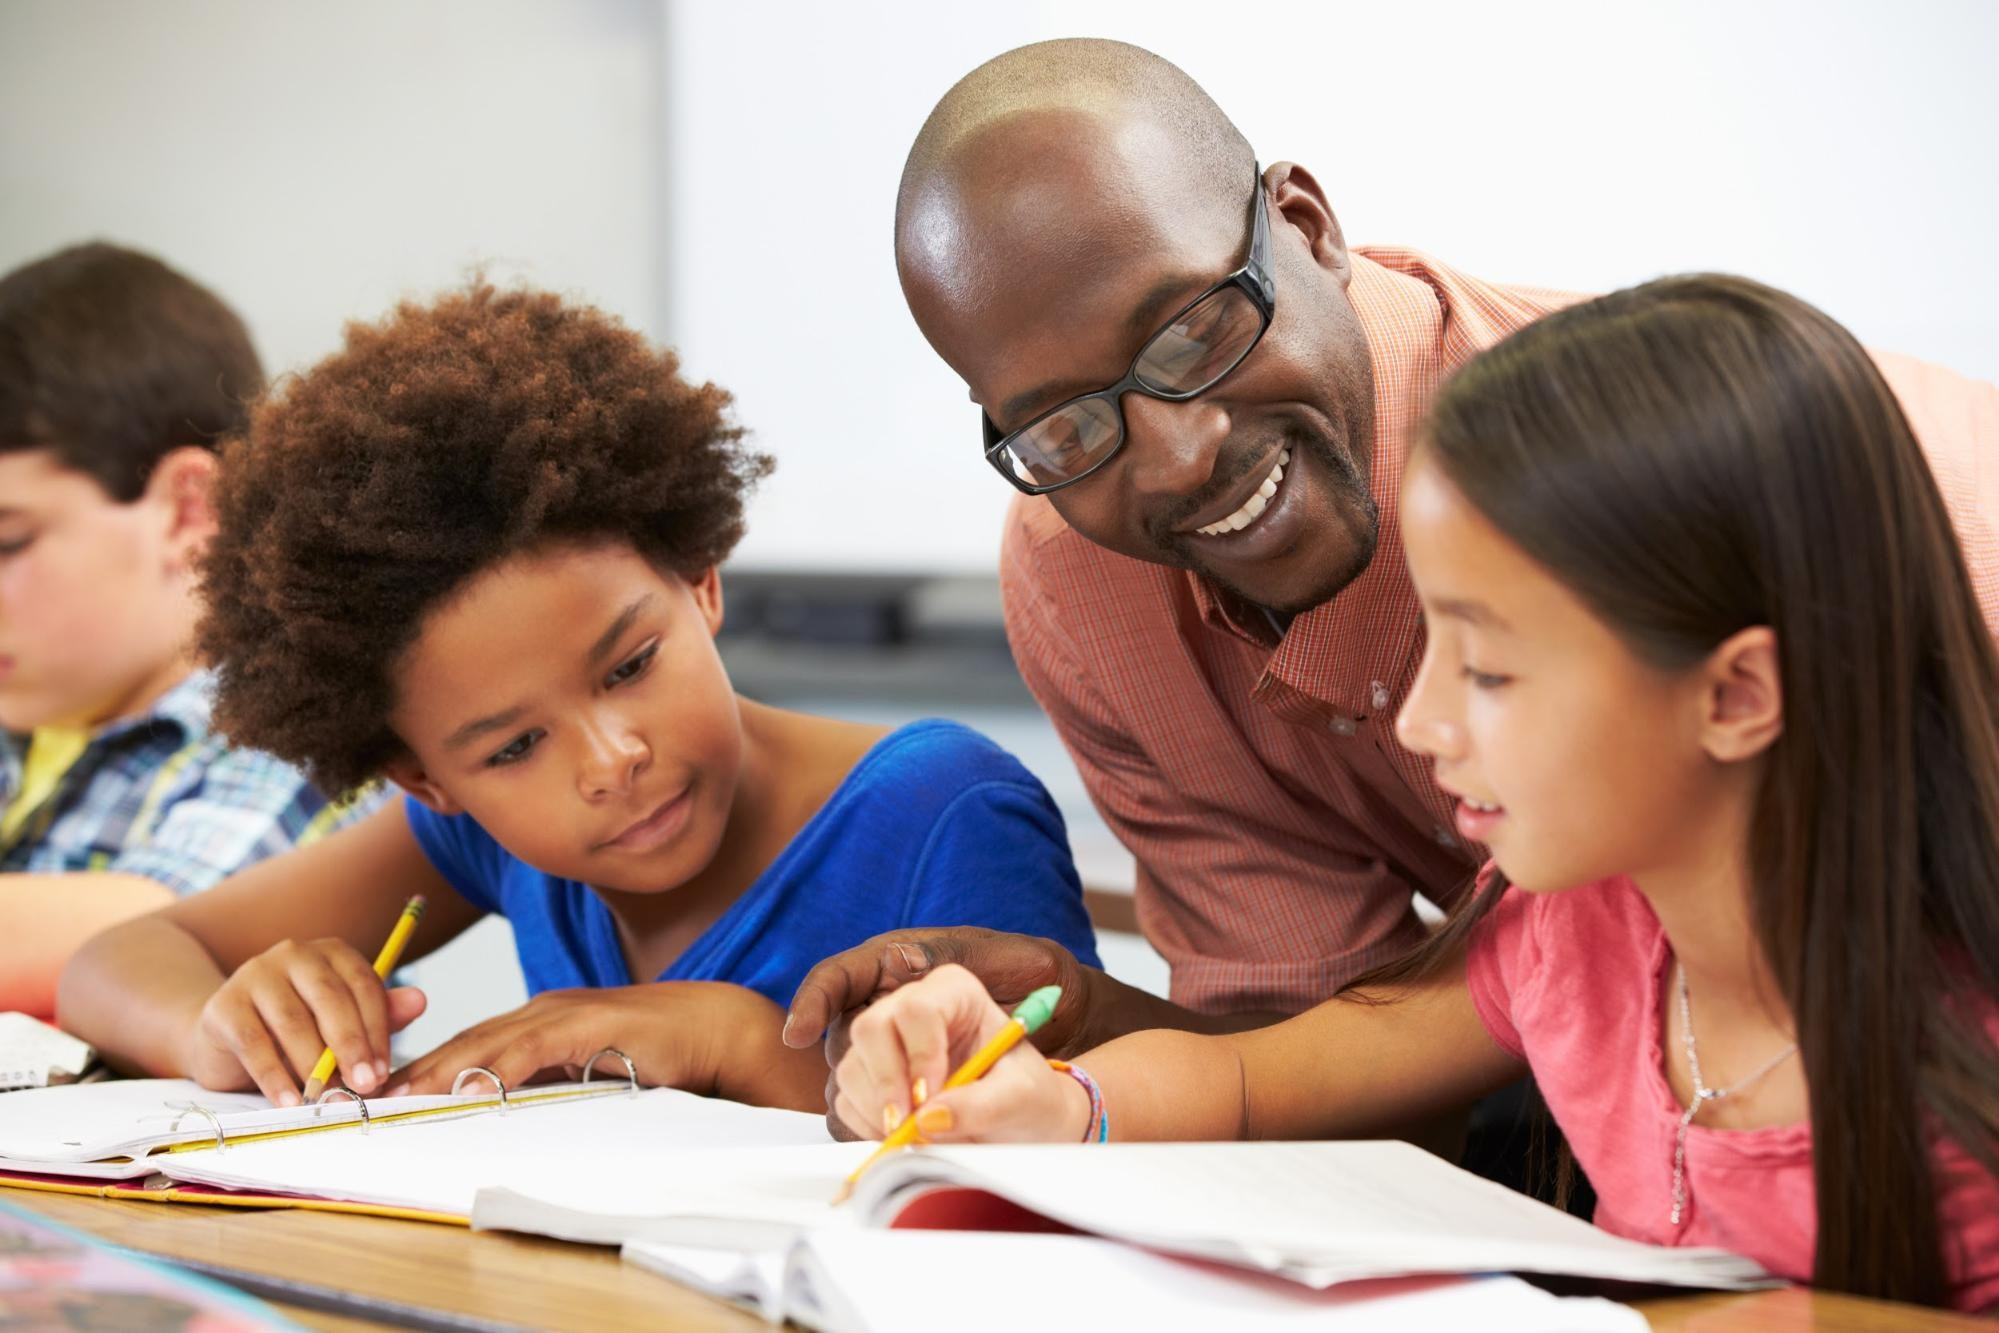 A teacher smiles at two young female students as they write in binders.